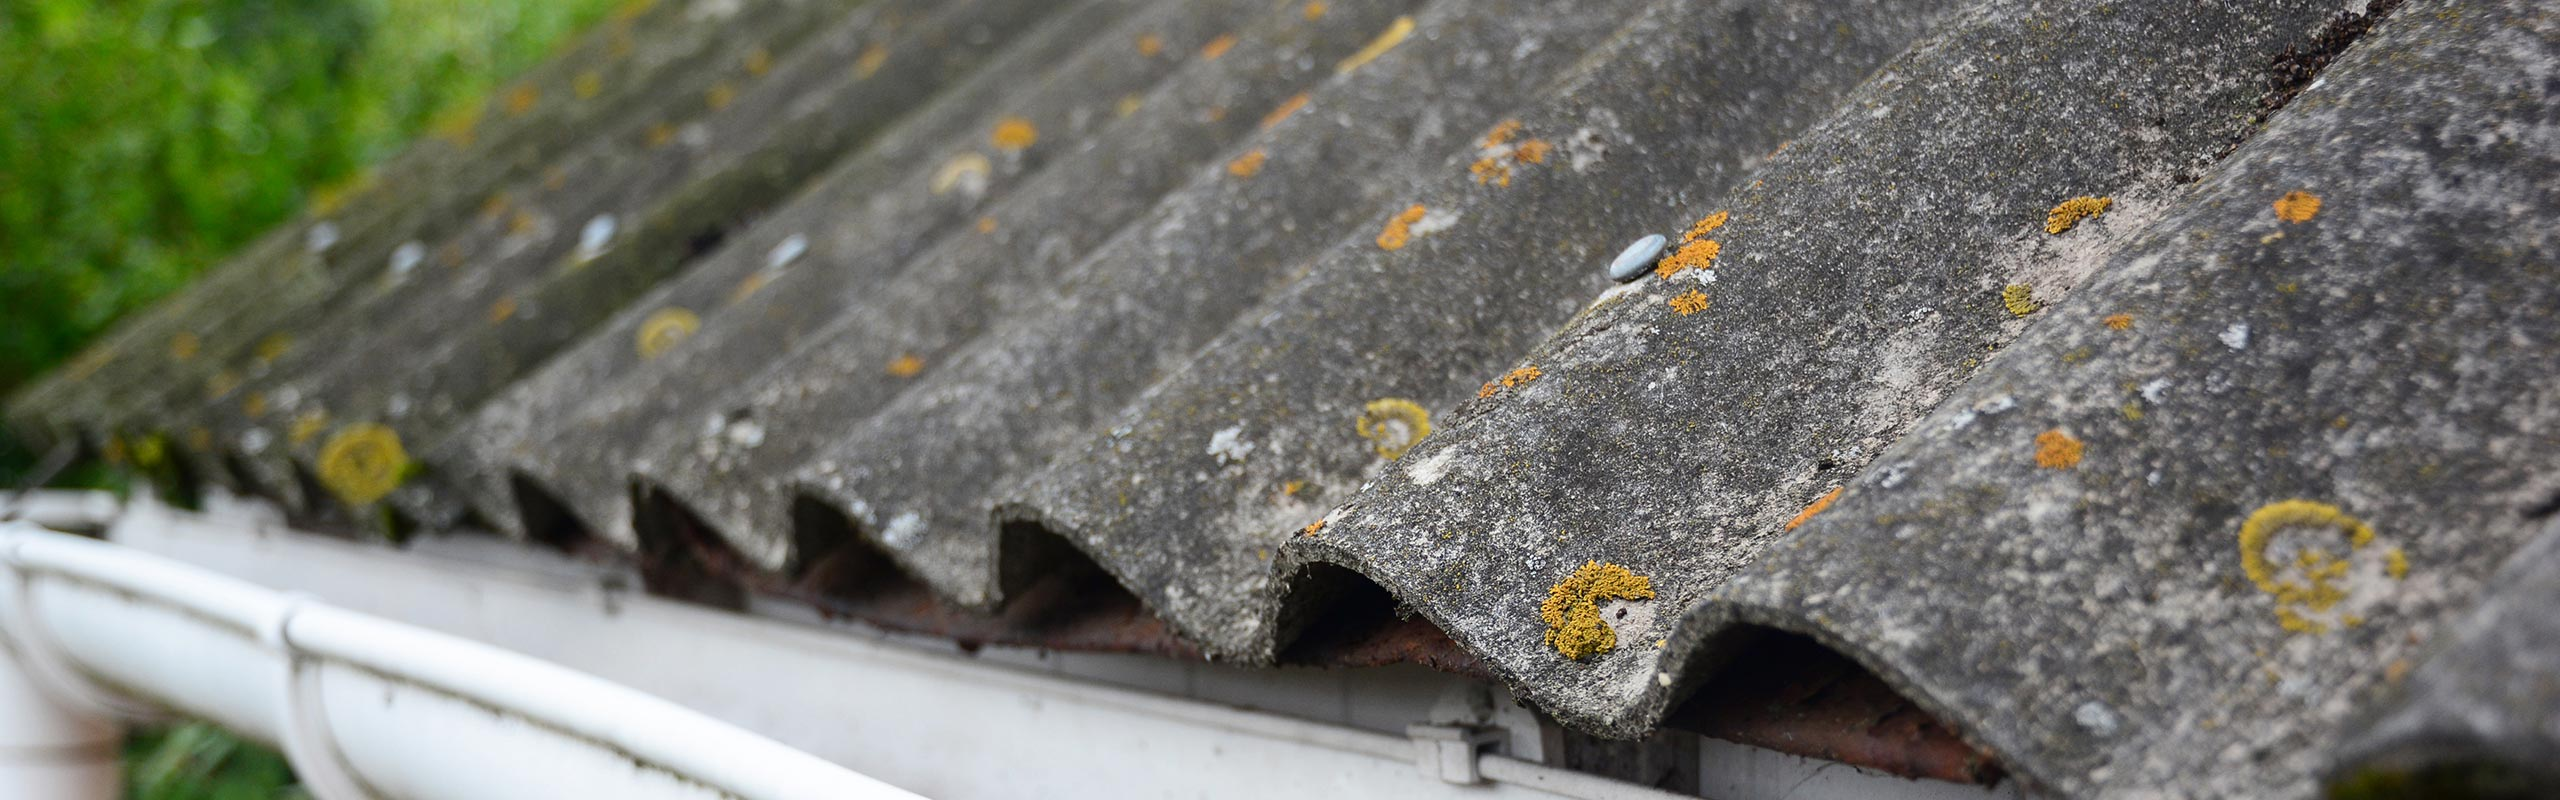 Asbestos Roof Paint Cleaning